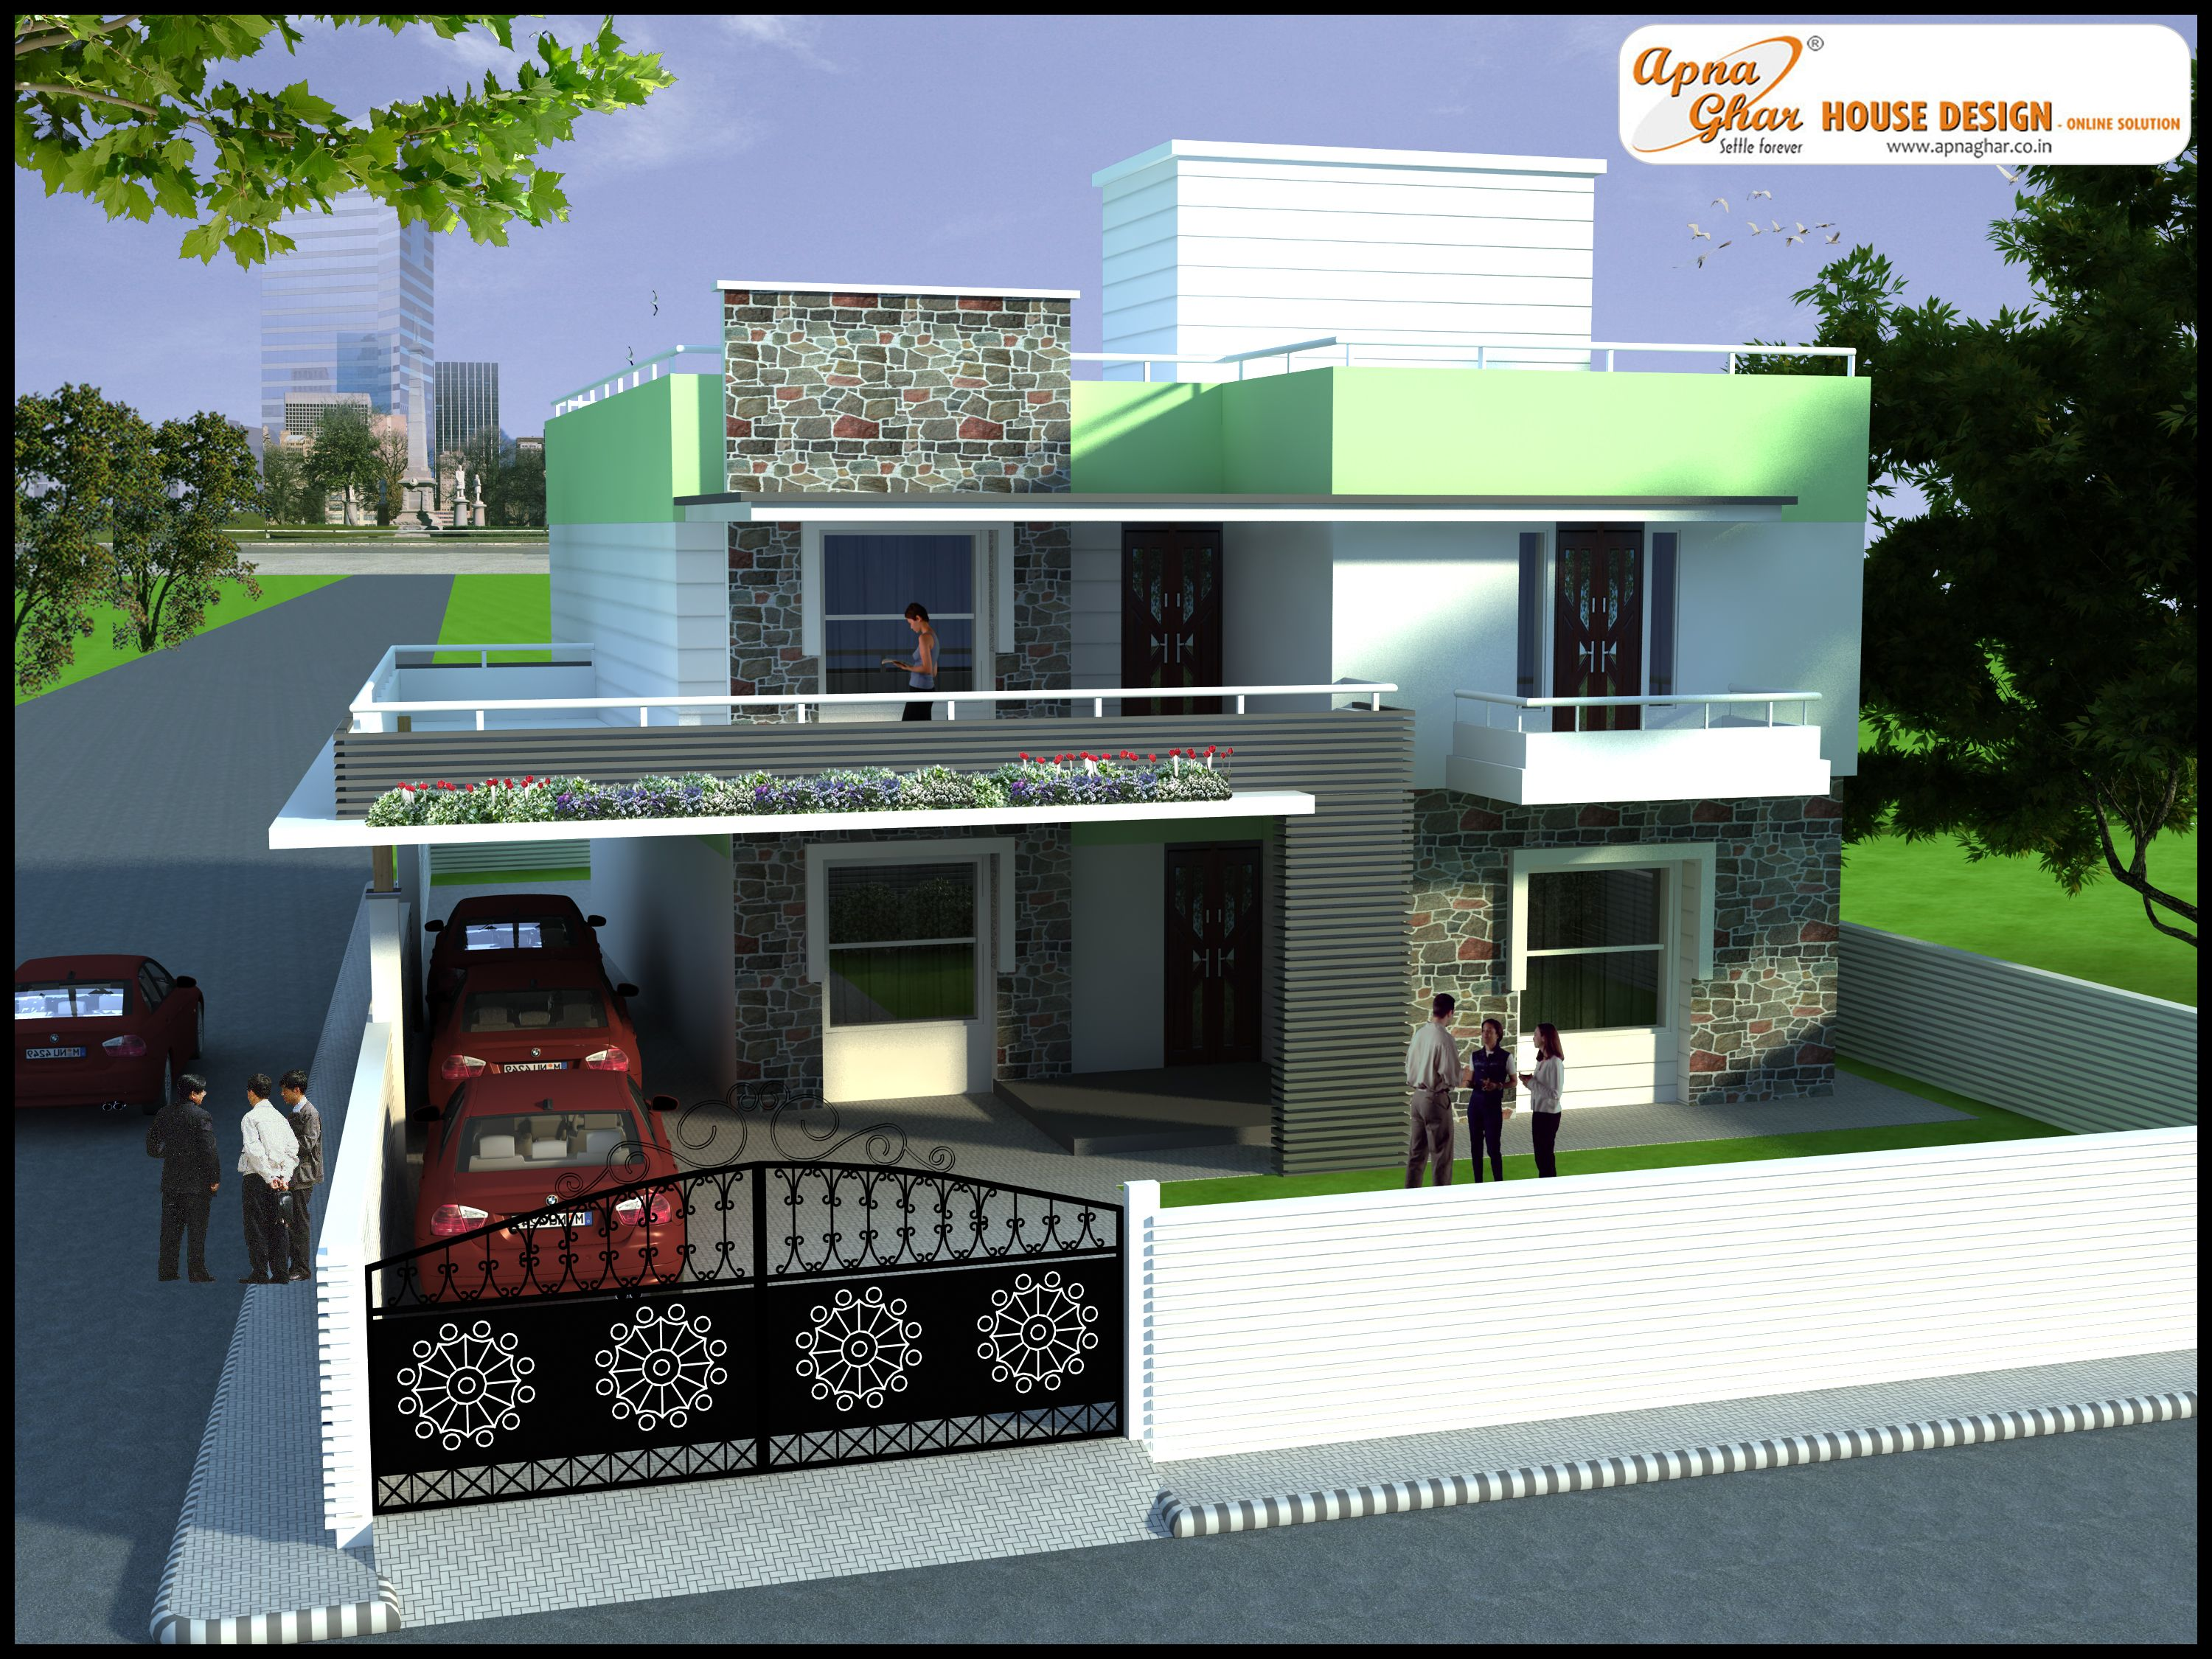 4 bedrooms duplex house design in 450m2 15m x 30m for Front view of duplex house in india